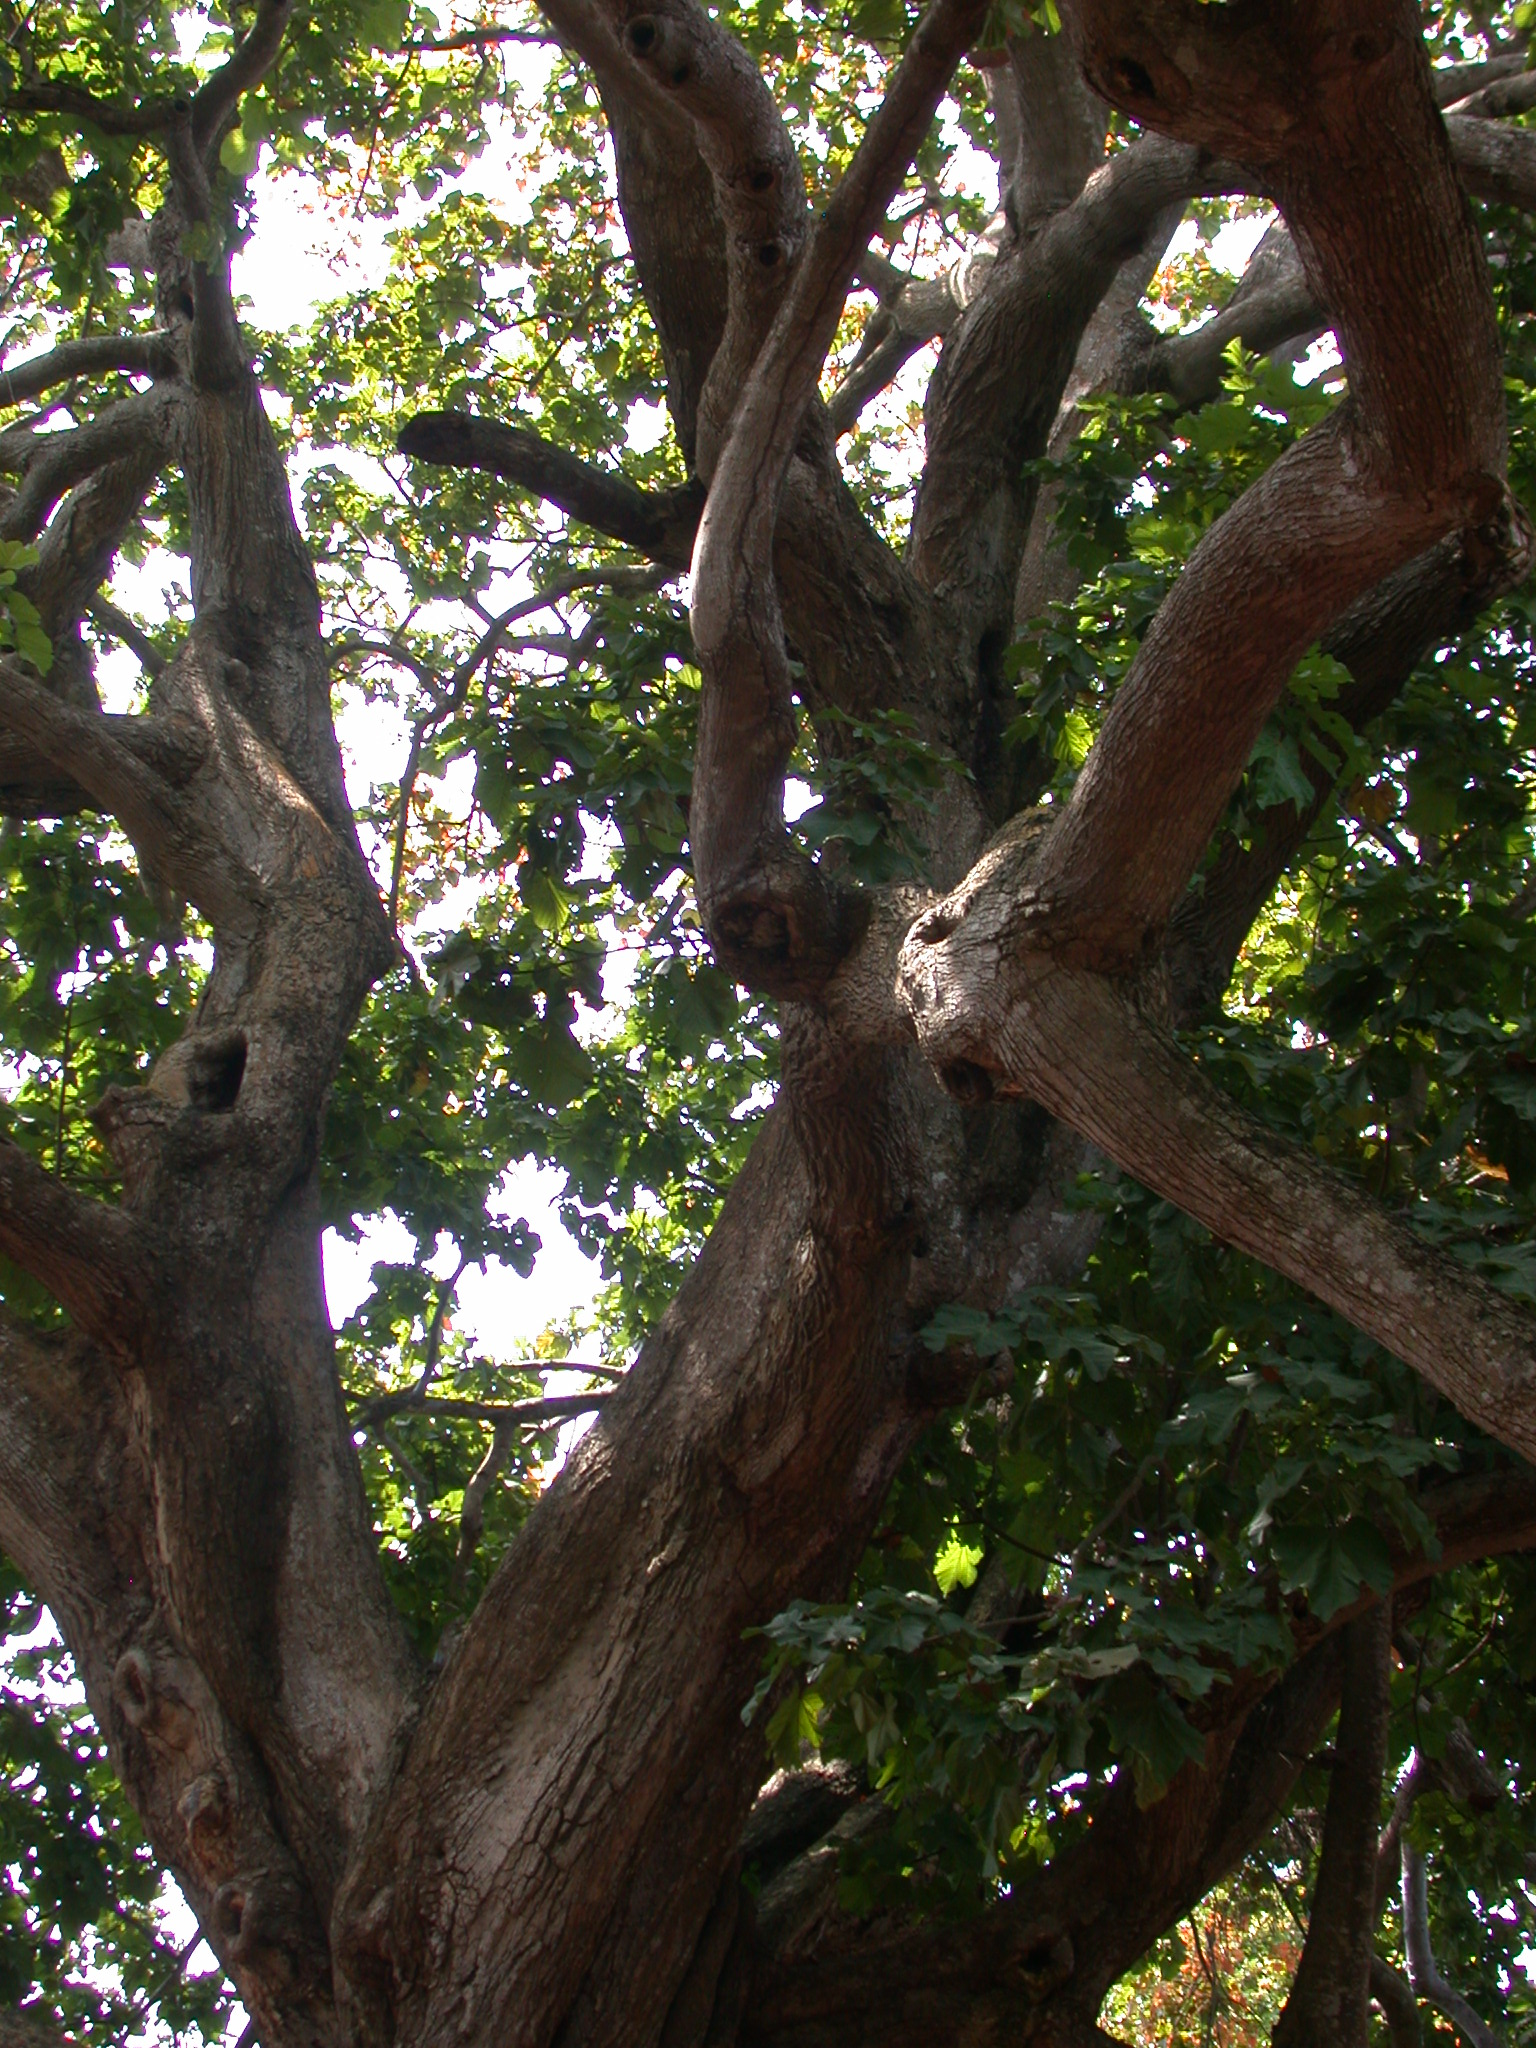 Crest of Large Gnarly Tree, Kpasse Sacred Forest, Ouidah, Benin